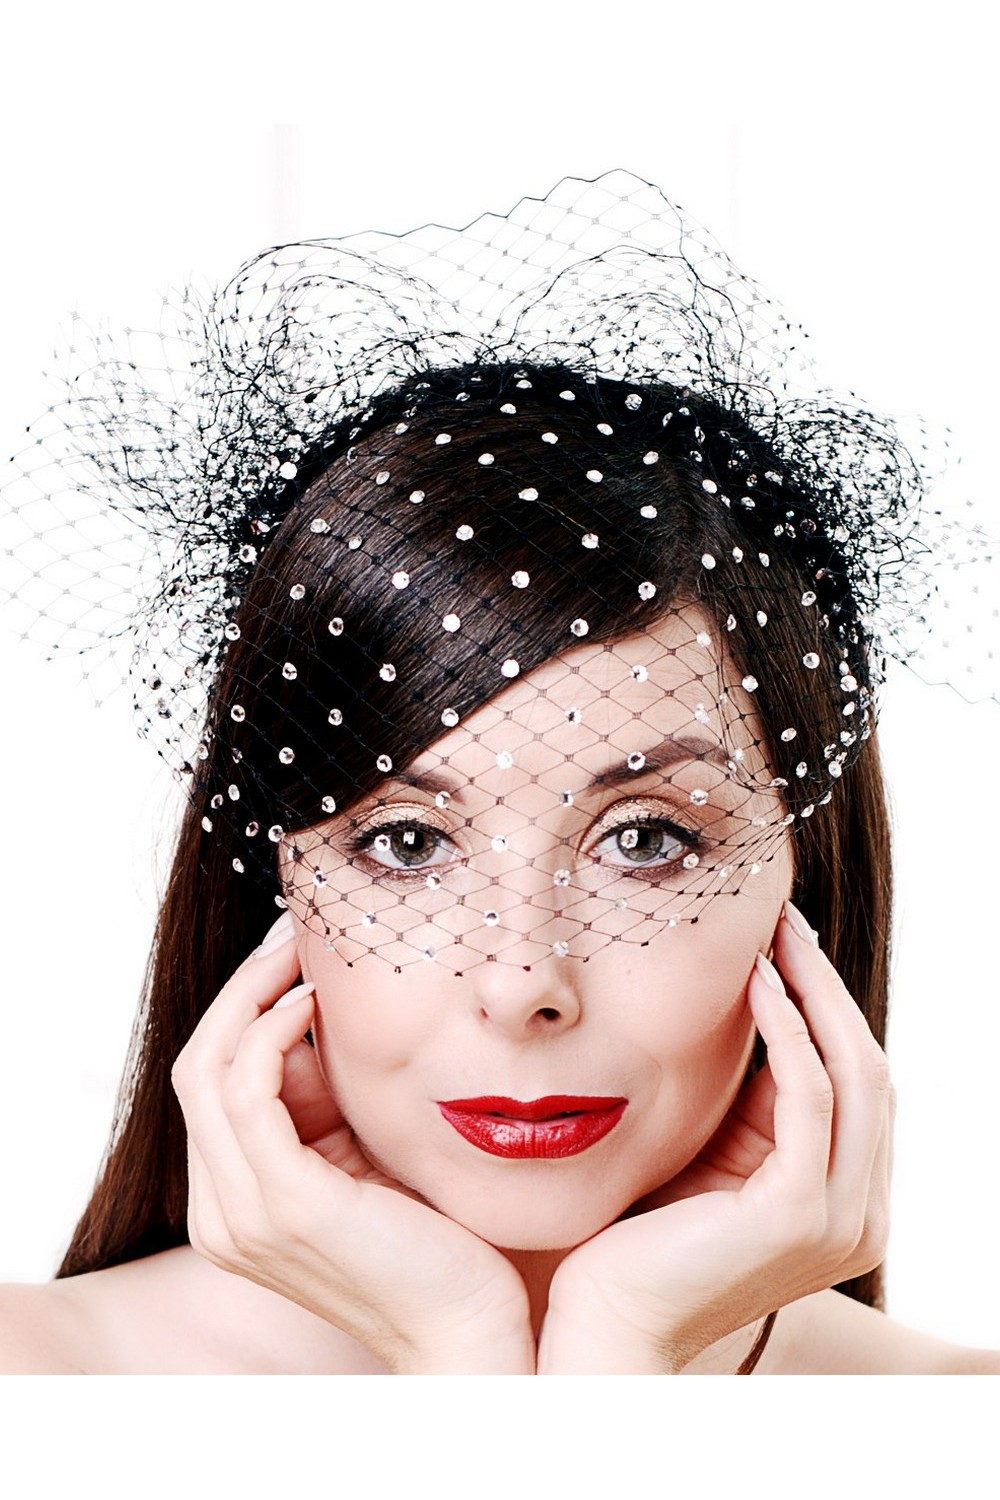 Buy Black women`s evening veil headband with swarovski crystals, Birdcage veil in balck